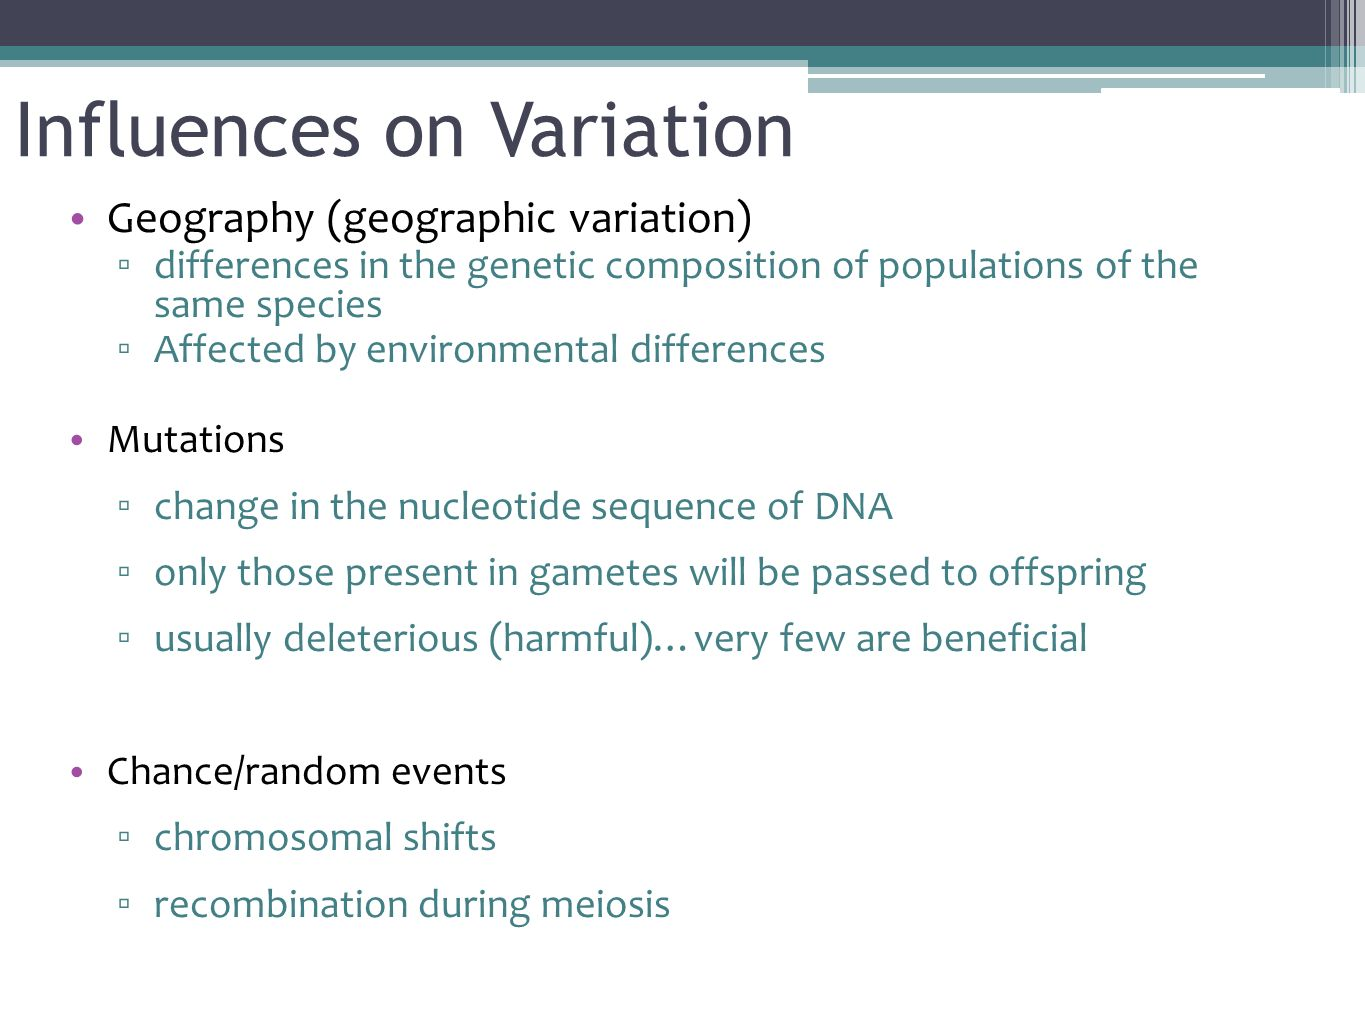 Influences on Variation Geography (geographic variation) ▫ differences in the genetic composition of populations of the same species ▫ Affected by environmental differences Mutations ▫ change in the nucleotide sequence of DNA ▫ only those present in gametes will be passed to offspring ▫ usually deleterious (harmful)…very few are beneficial Chance/random events ▫ chromosomal shifts ▫ recombination during meiosis